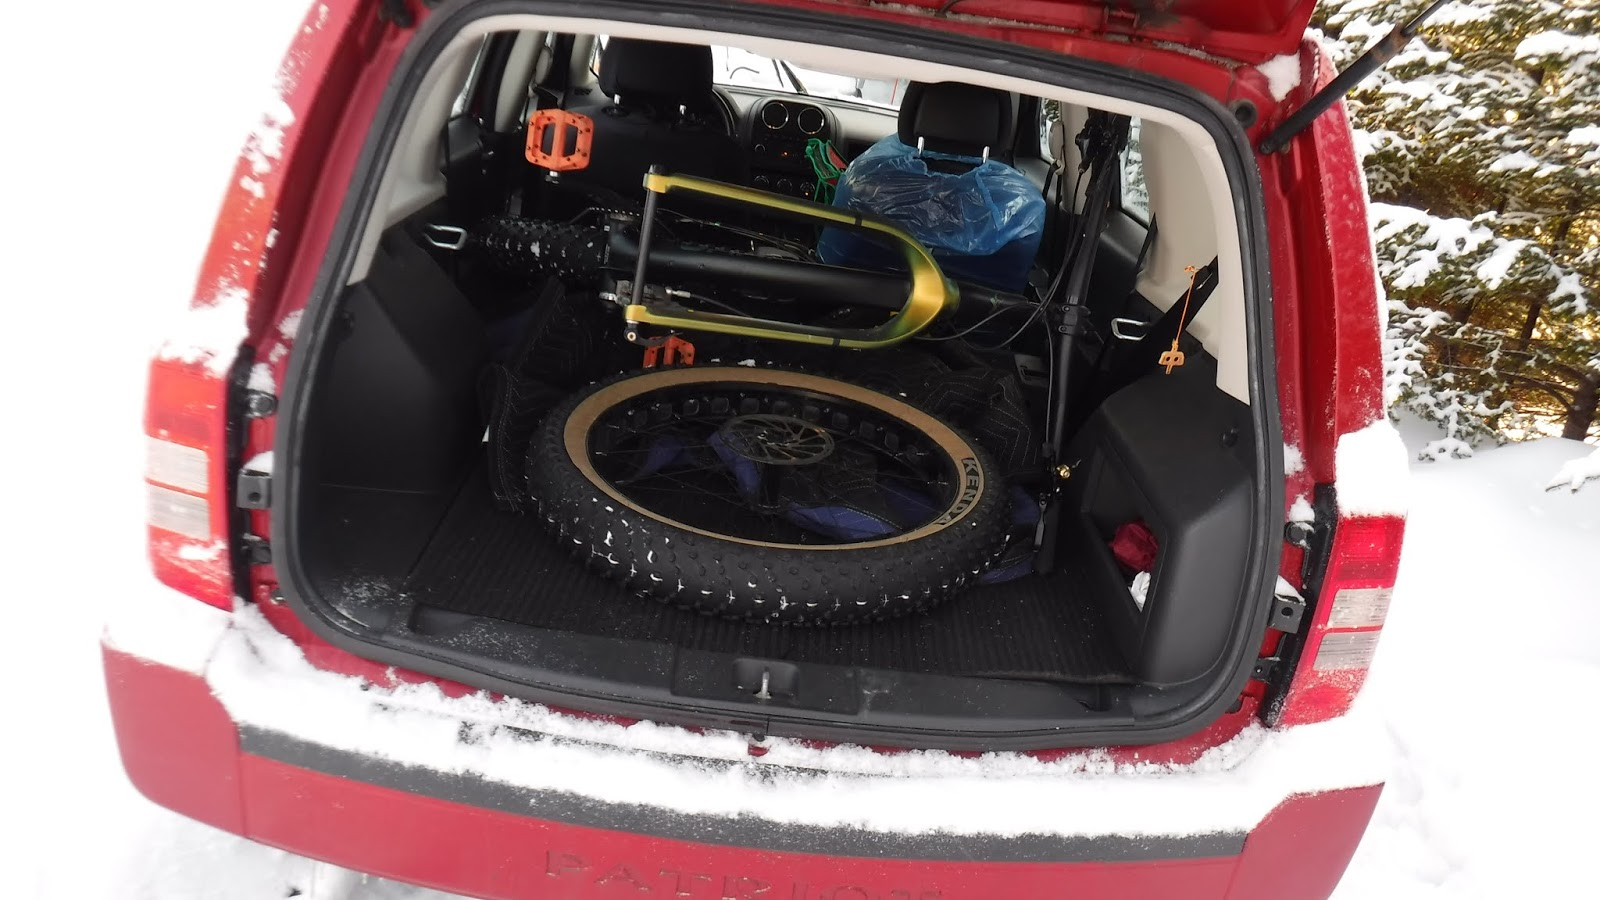 Will My Fat Bike Fit? | 25 Compact SUVs Tested